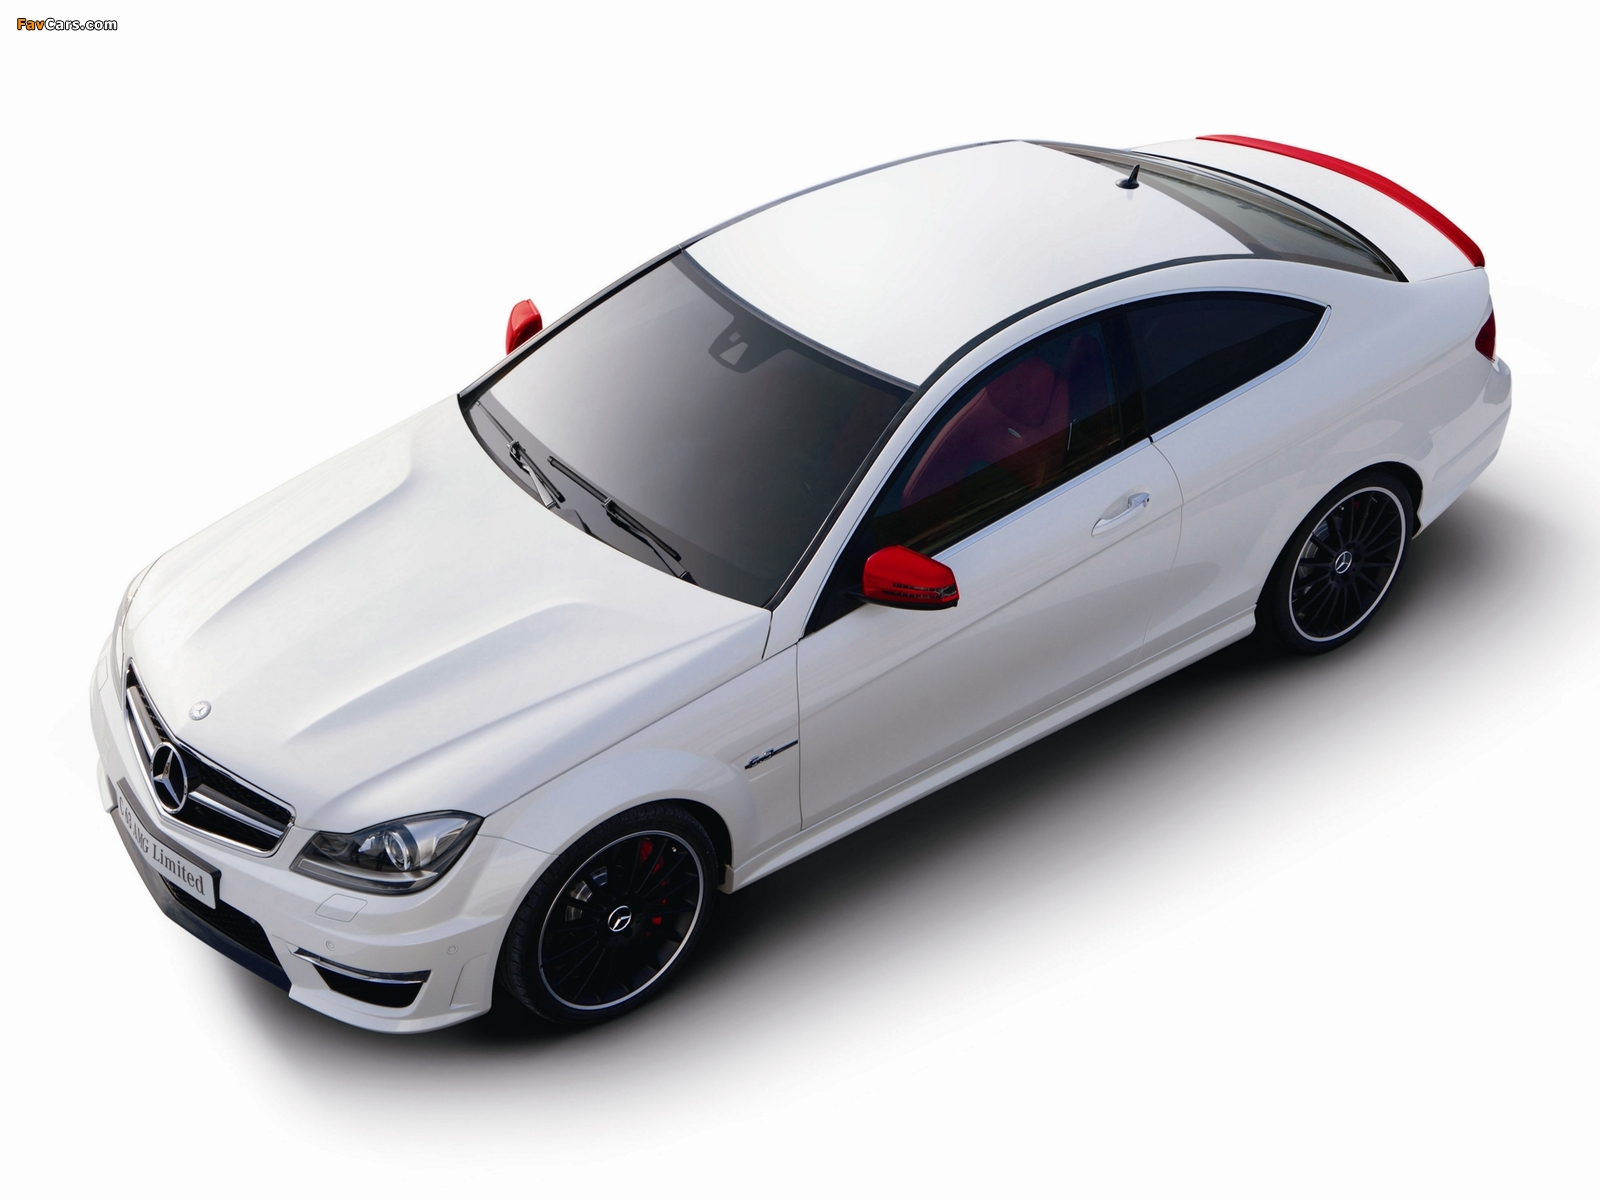 Mercedes-Benz C 63 AMG Limited Coupe (C204) 2013 photos (1600 x 1200)